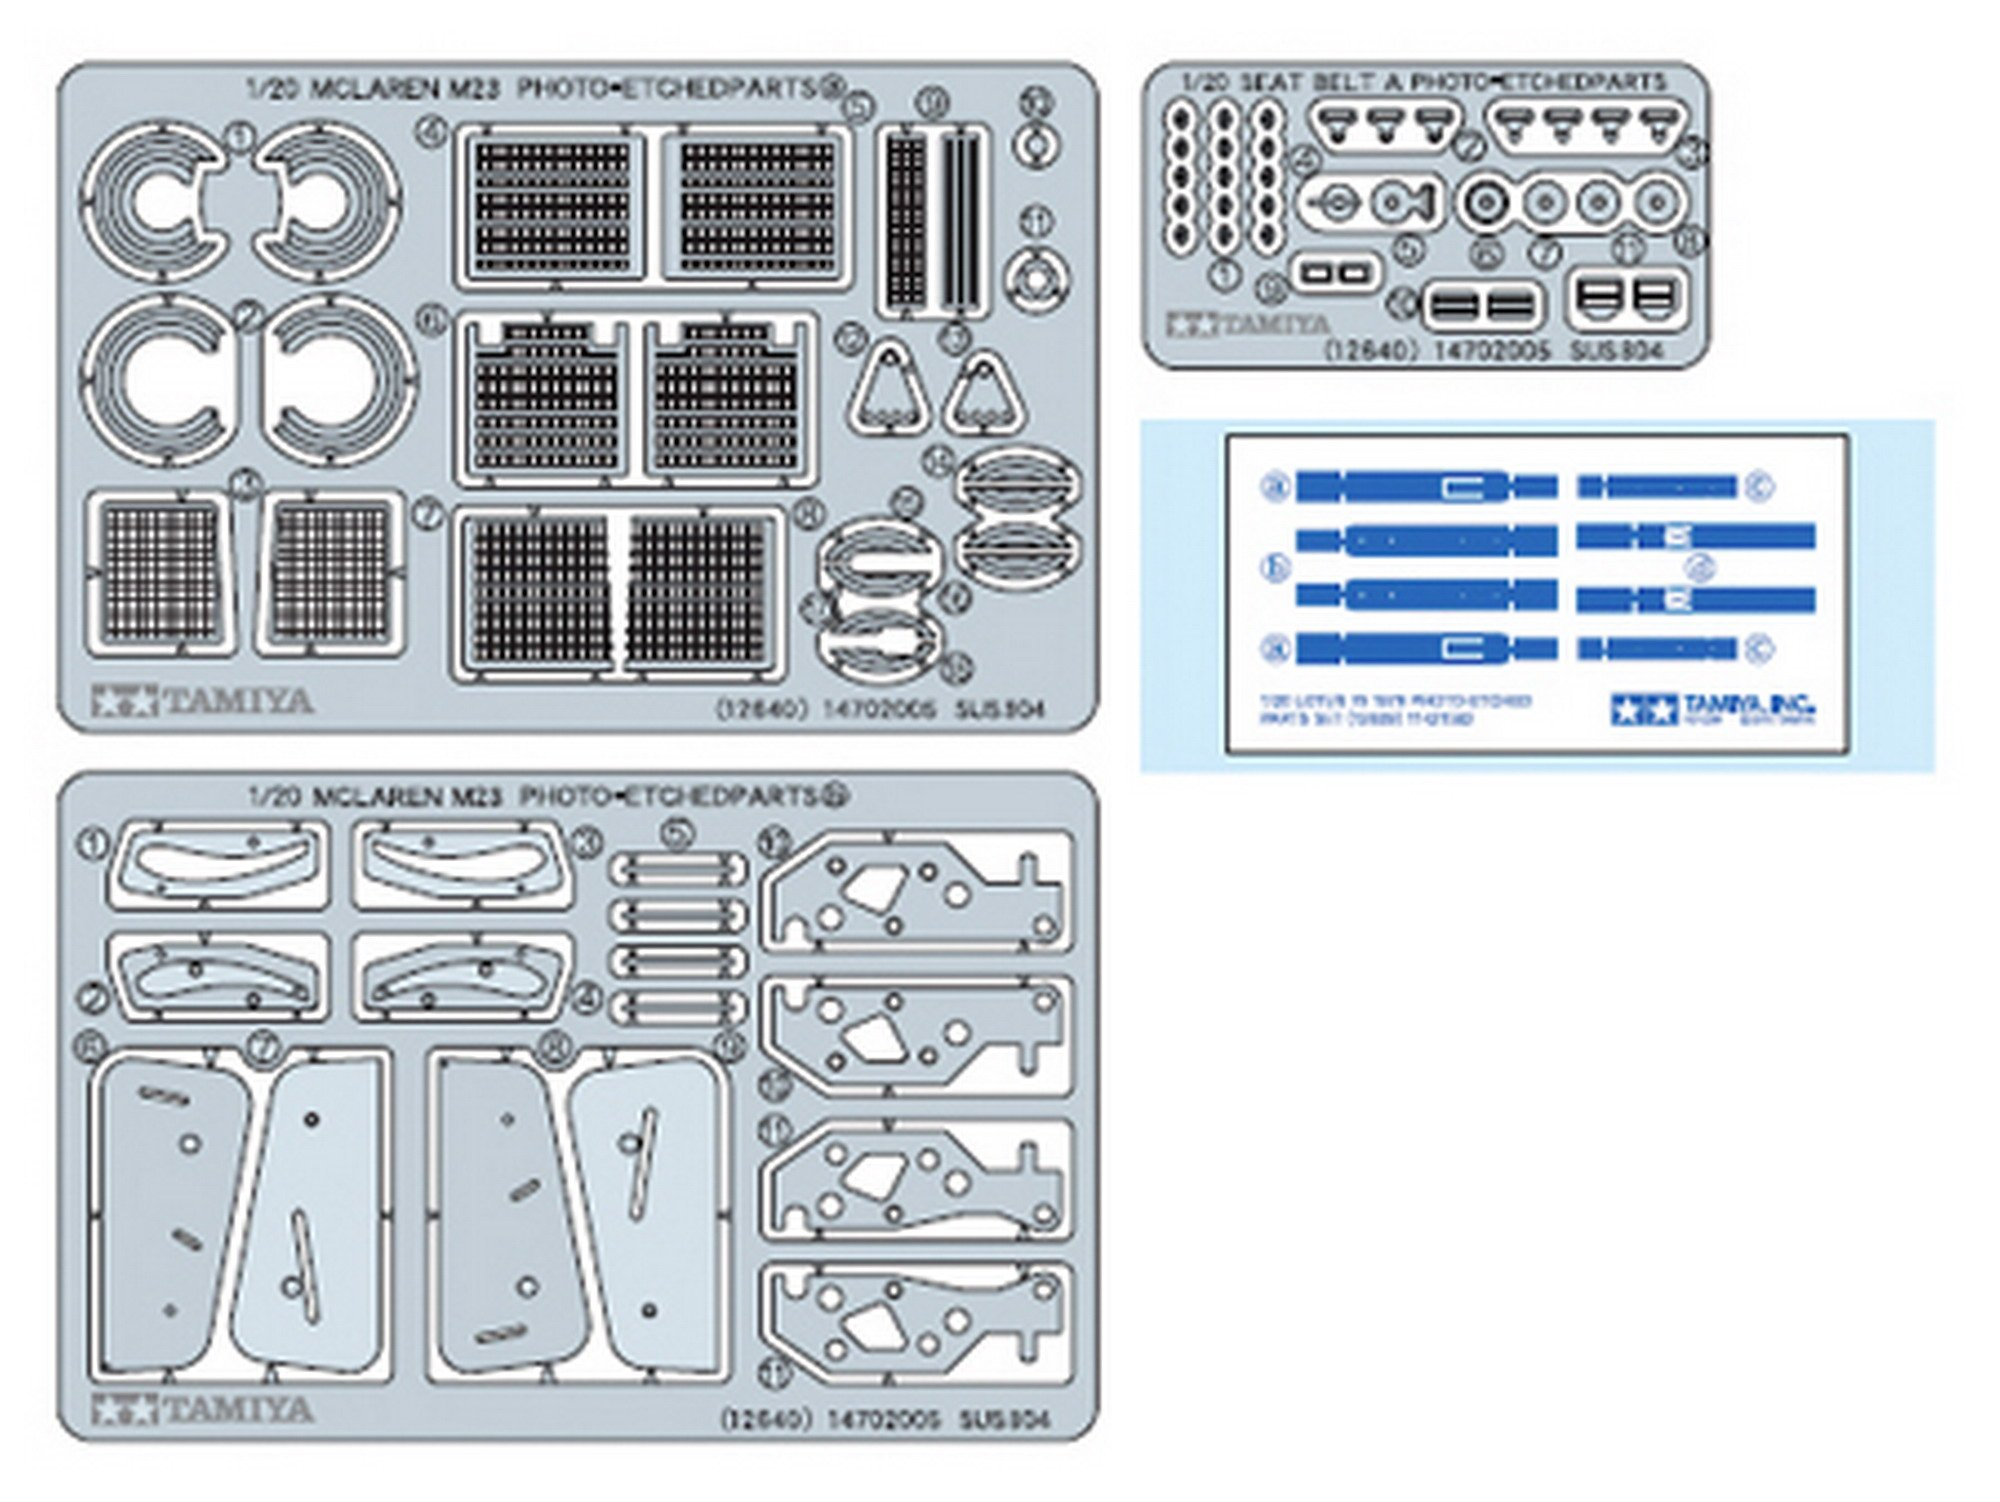 The Hobby Company Tamiya 1:20 Mclaren M23 1976 Photo Etched Parts